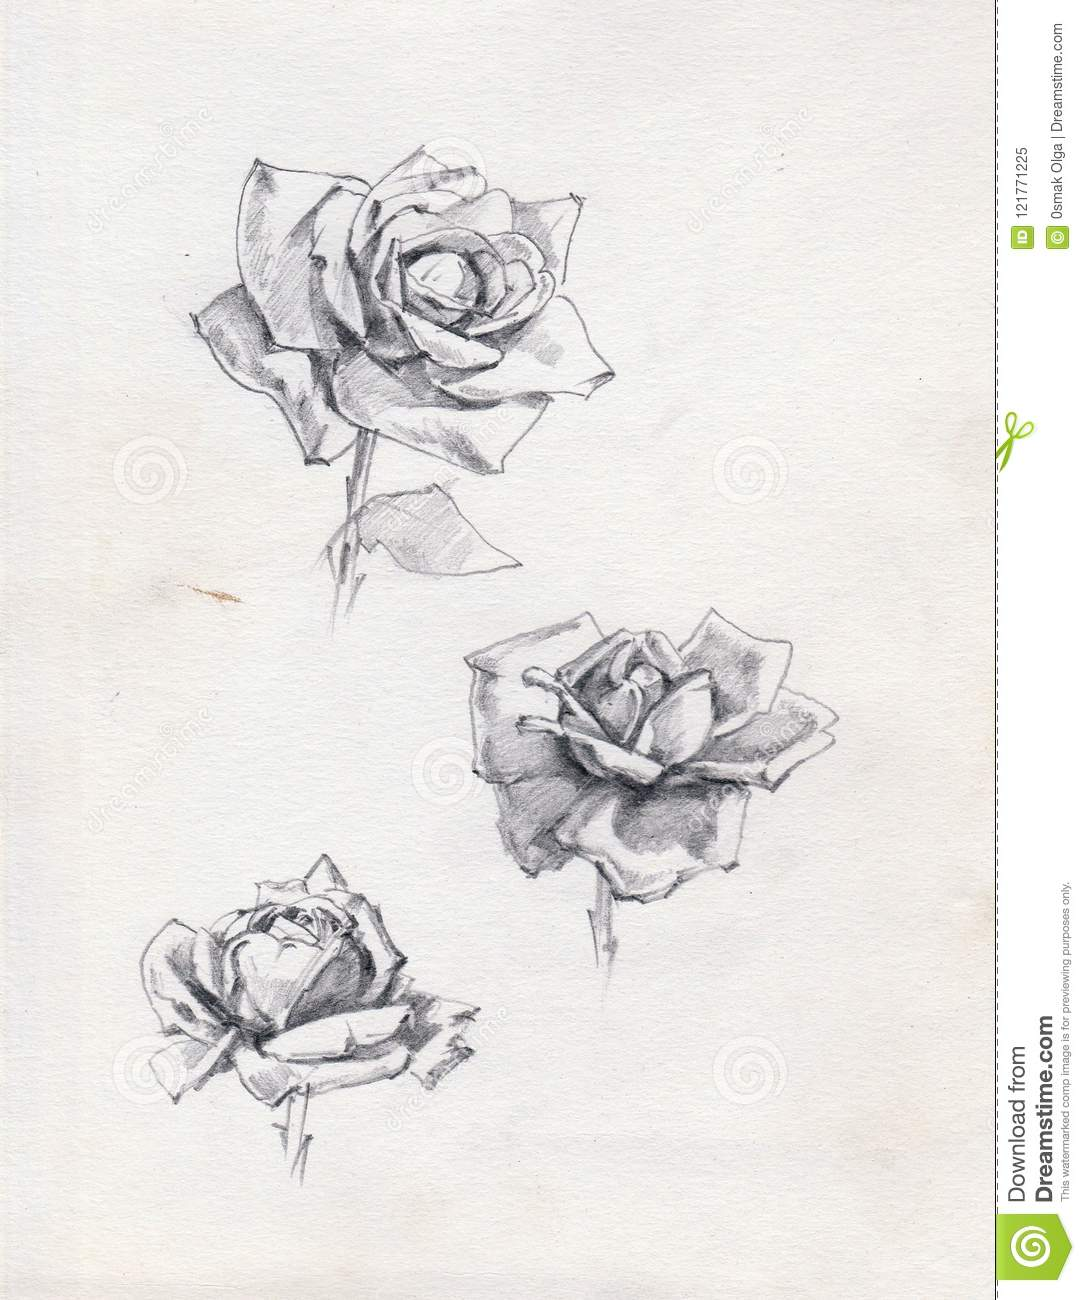 Pencil drawing background floral pattern handmade beautiful tender romantic rose flowers